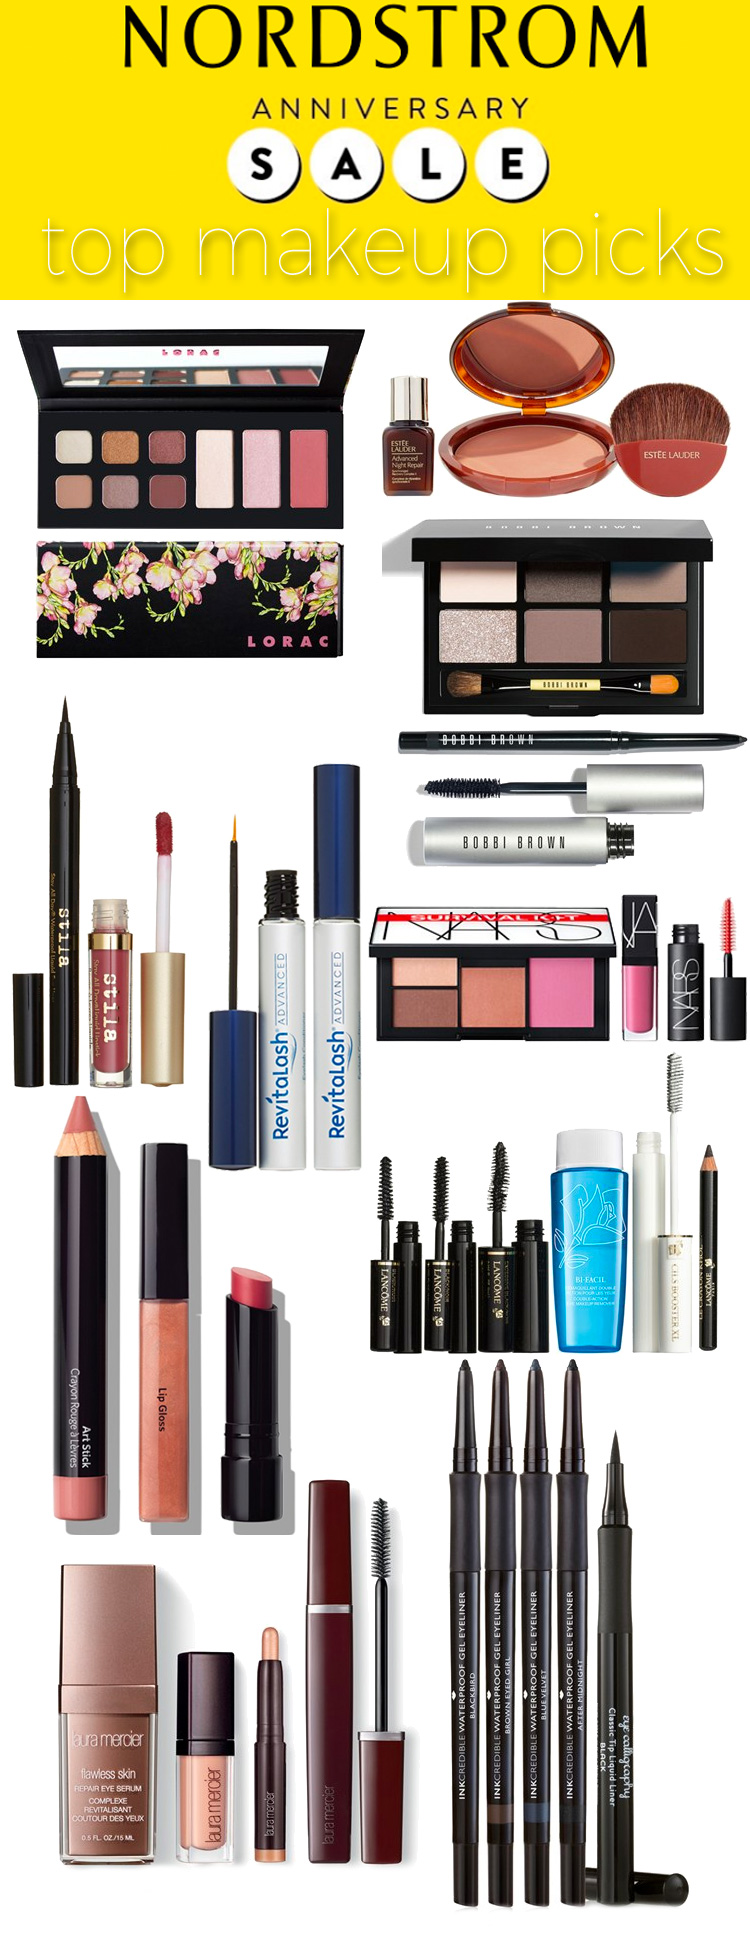 Top 10 Nordstrom Anniversary Sale Makeup Picks 2016